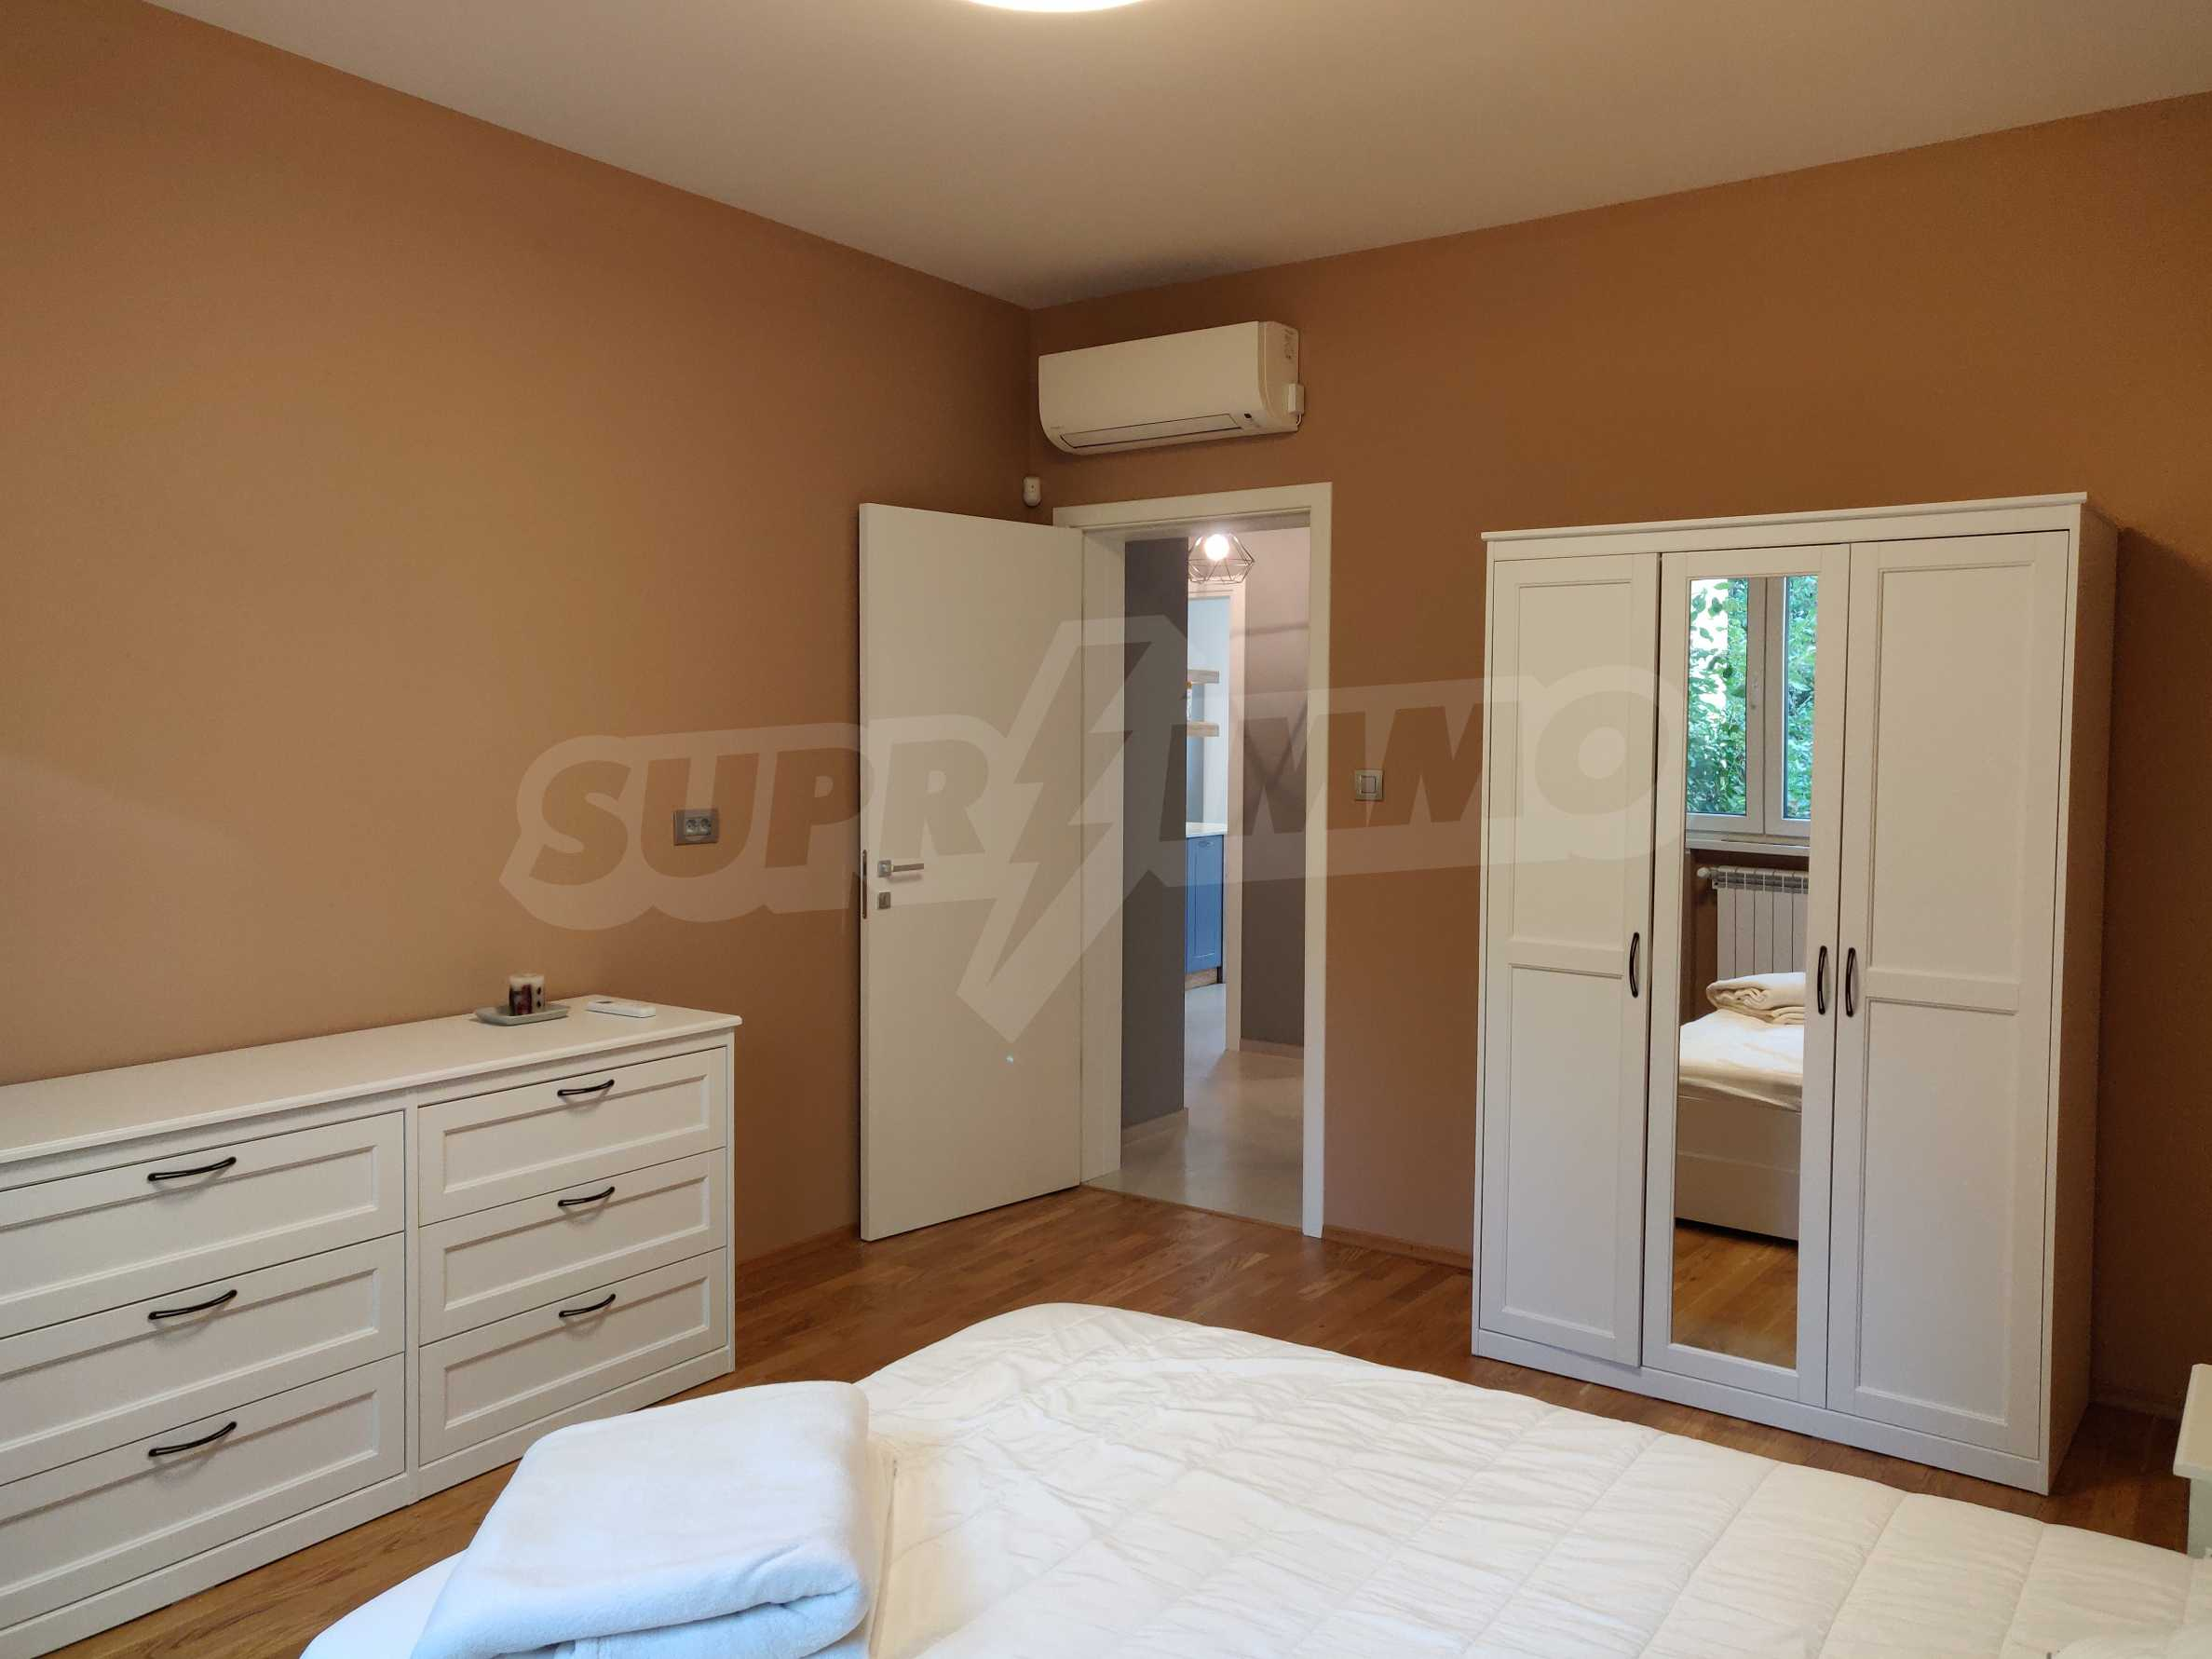 Three bedroom apartment in the center of Sofia 15